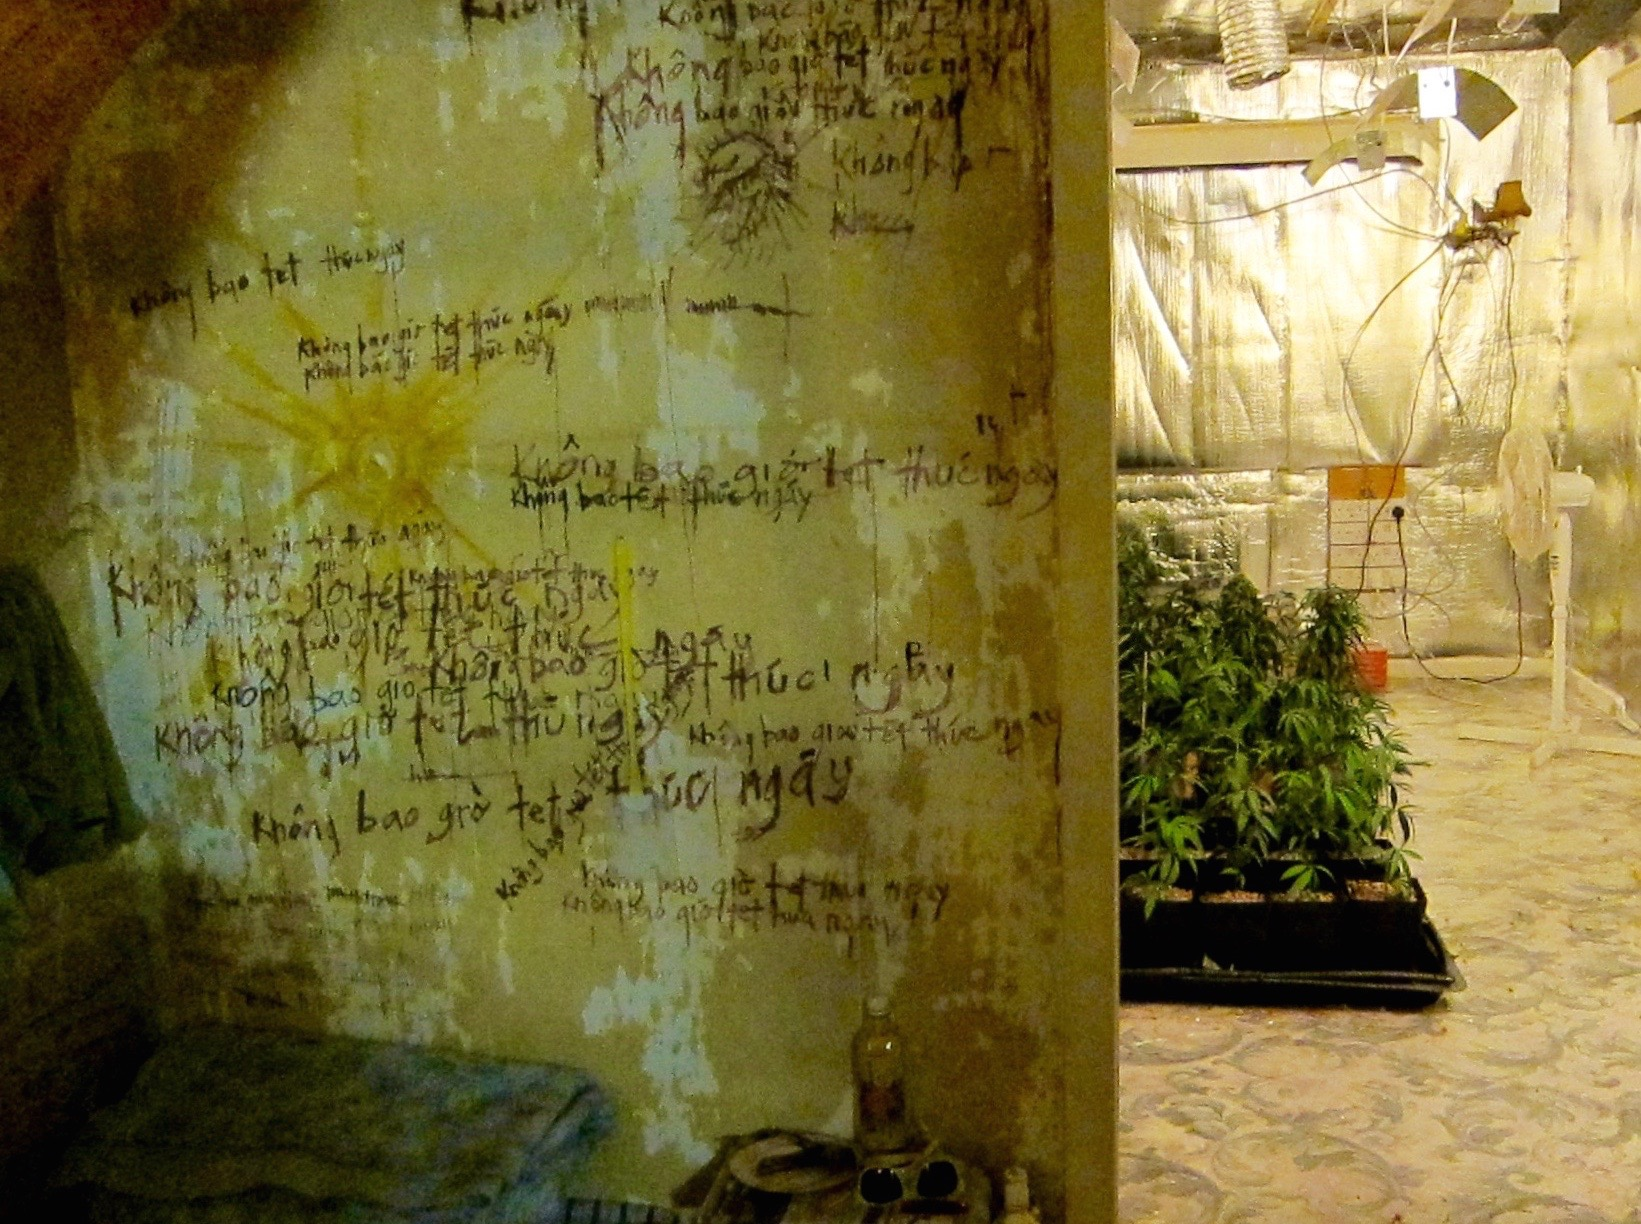 STOLEN : CANNABIS GROWING HOUSE